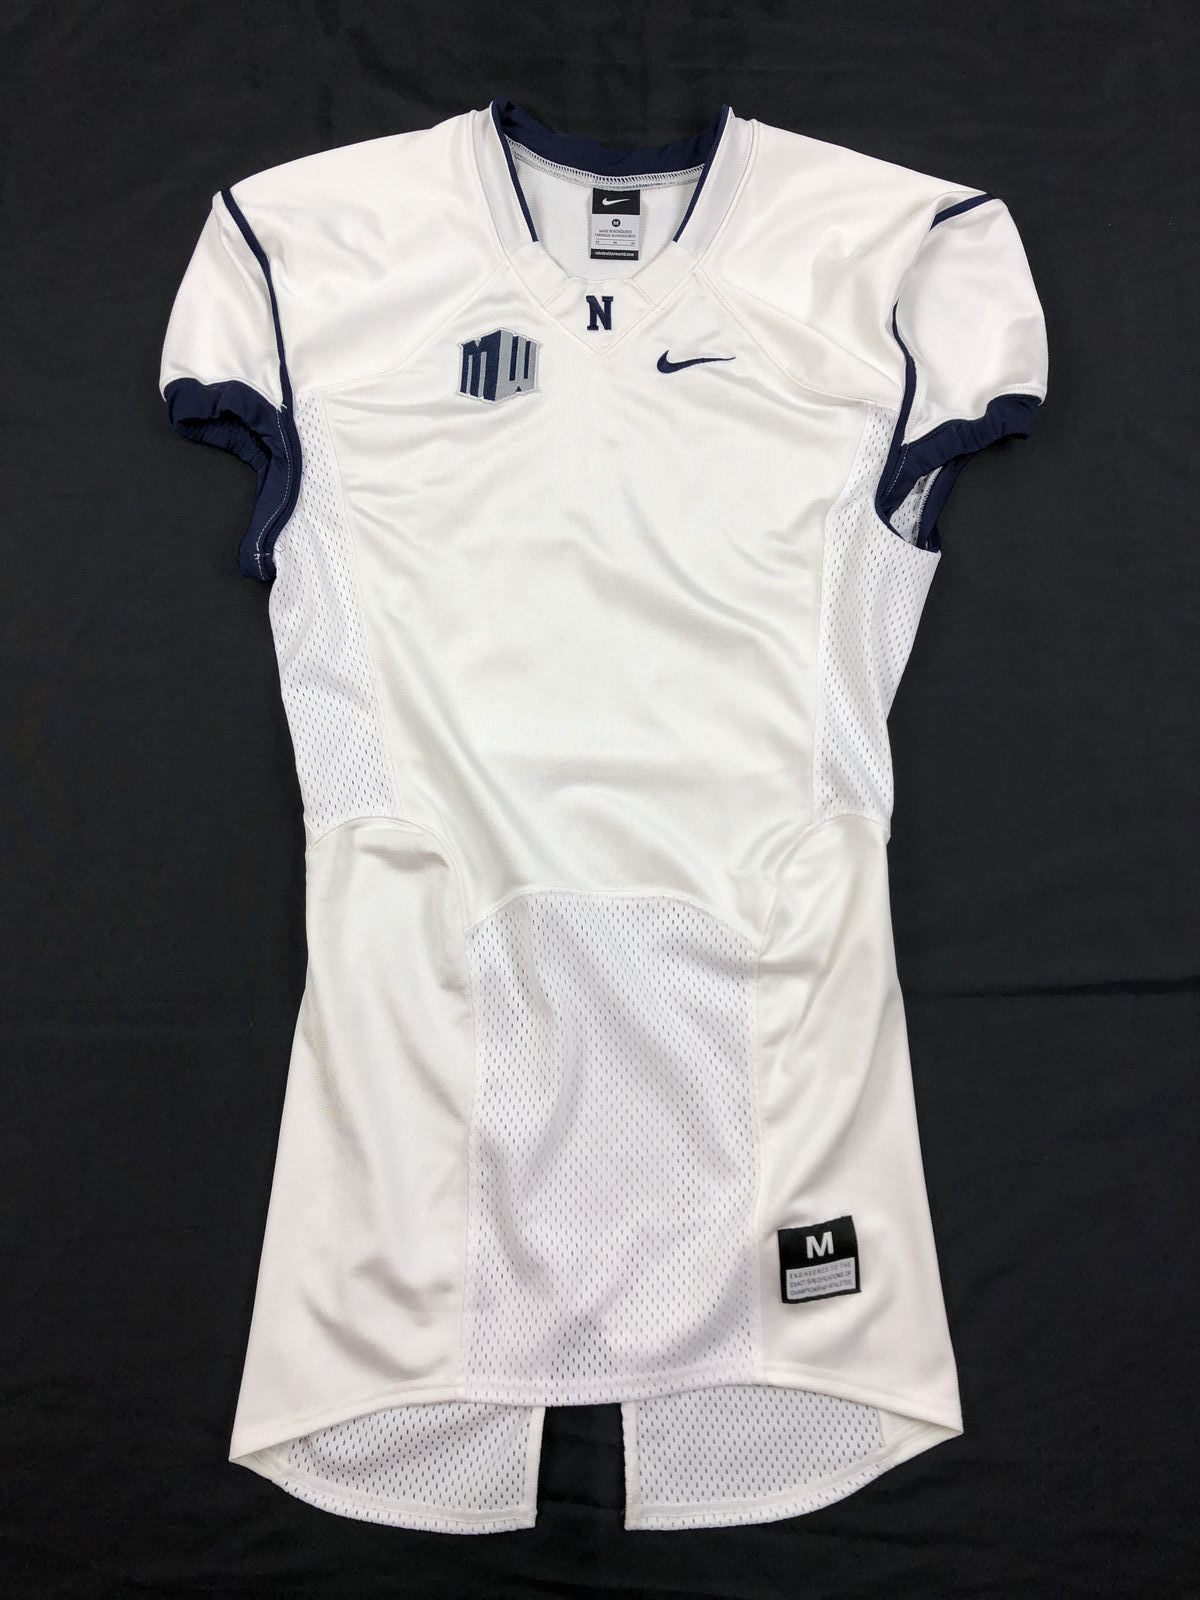 best service 0bb76 8b4c0 Nike Nevada Wolfpack - White Jersey (M) - Used | eBay